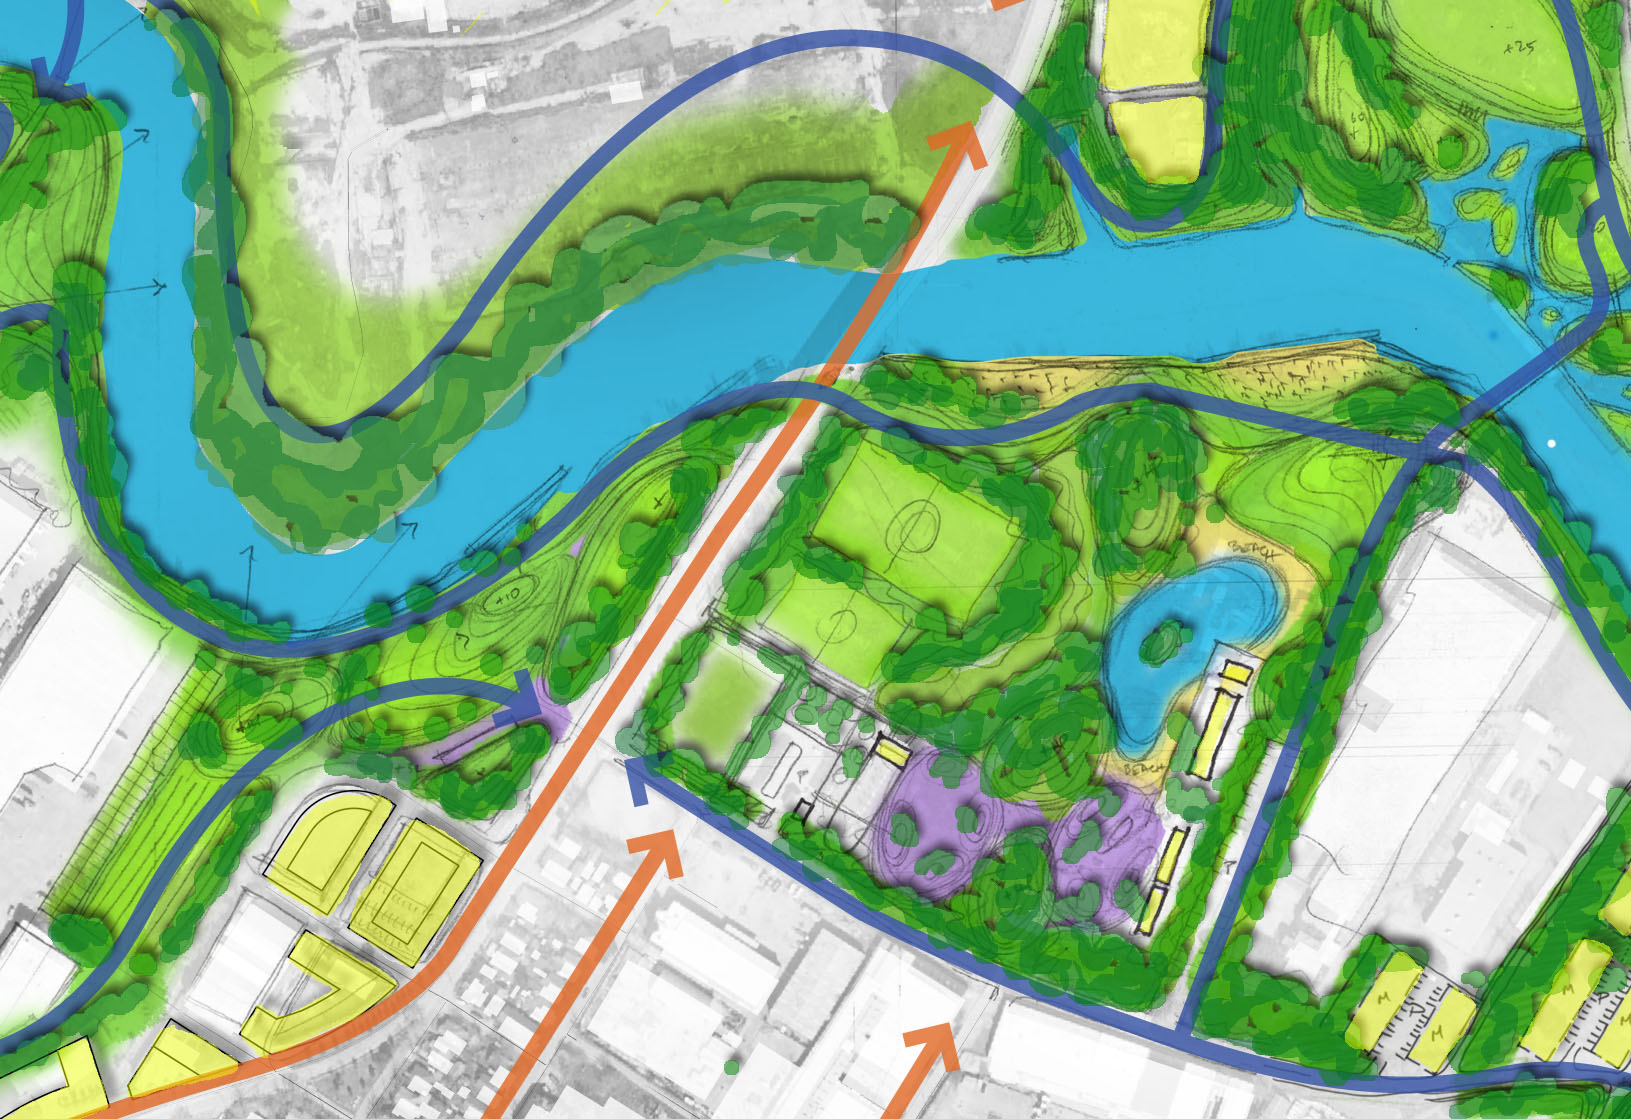 https://buffalobayou.org/event/moving-east-east-sector-community-meeting-2/